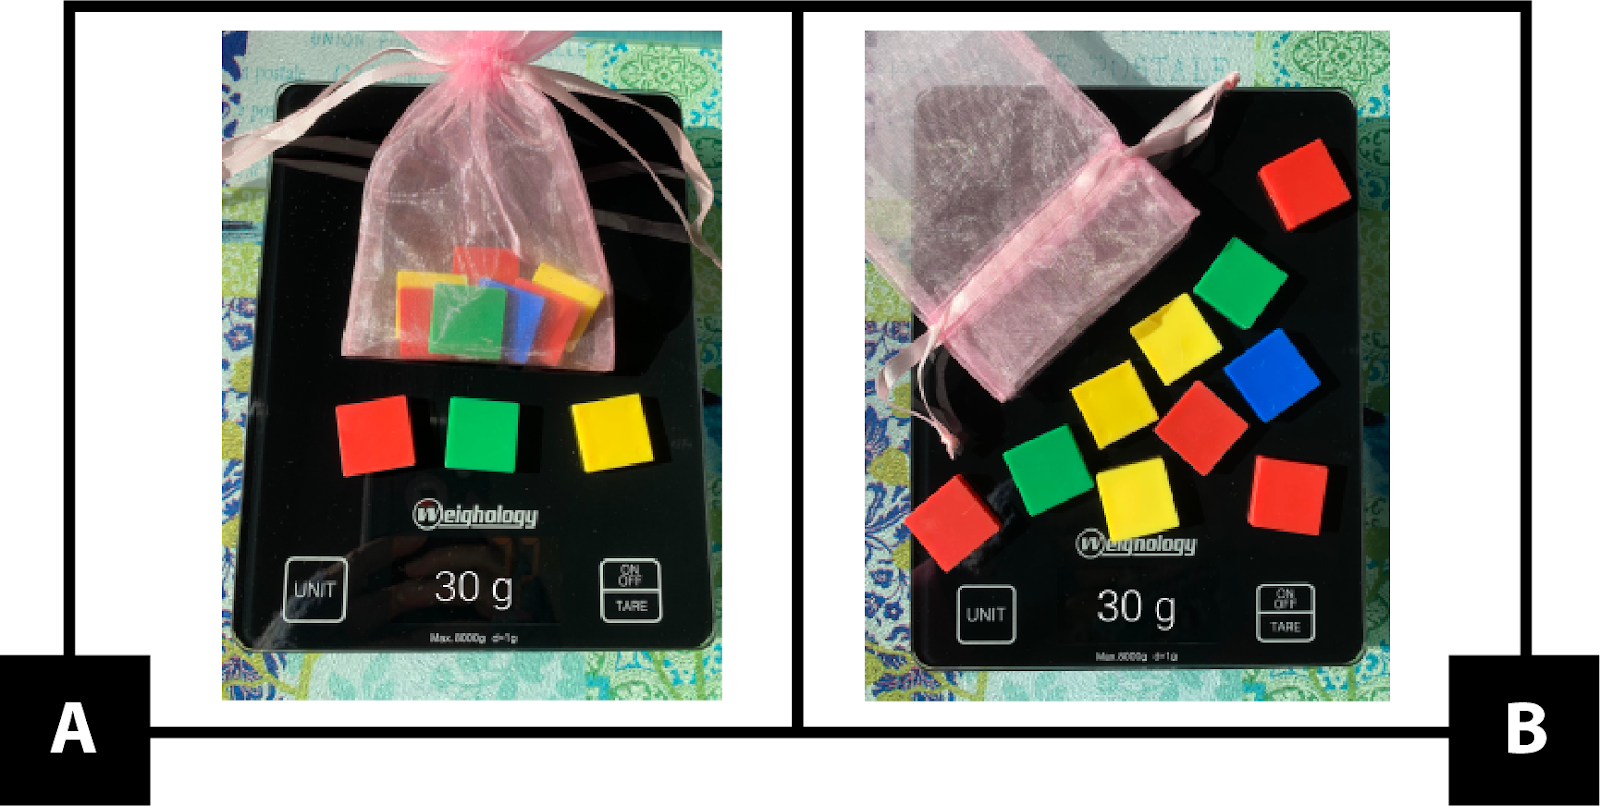 A. shows a bag with colored square tiles inside and 3 tiles outside of the bag. The collection weighs 30 grams. B. shows an empty bag with 10 tiles outside of the bag. The collection weighs 30 grams.